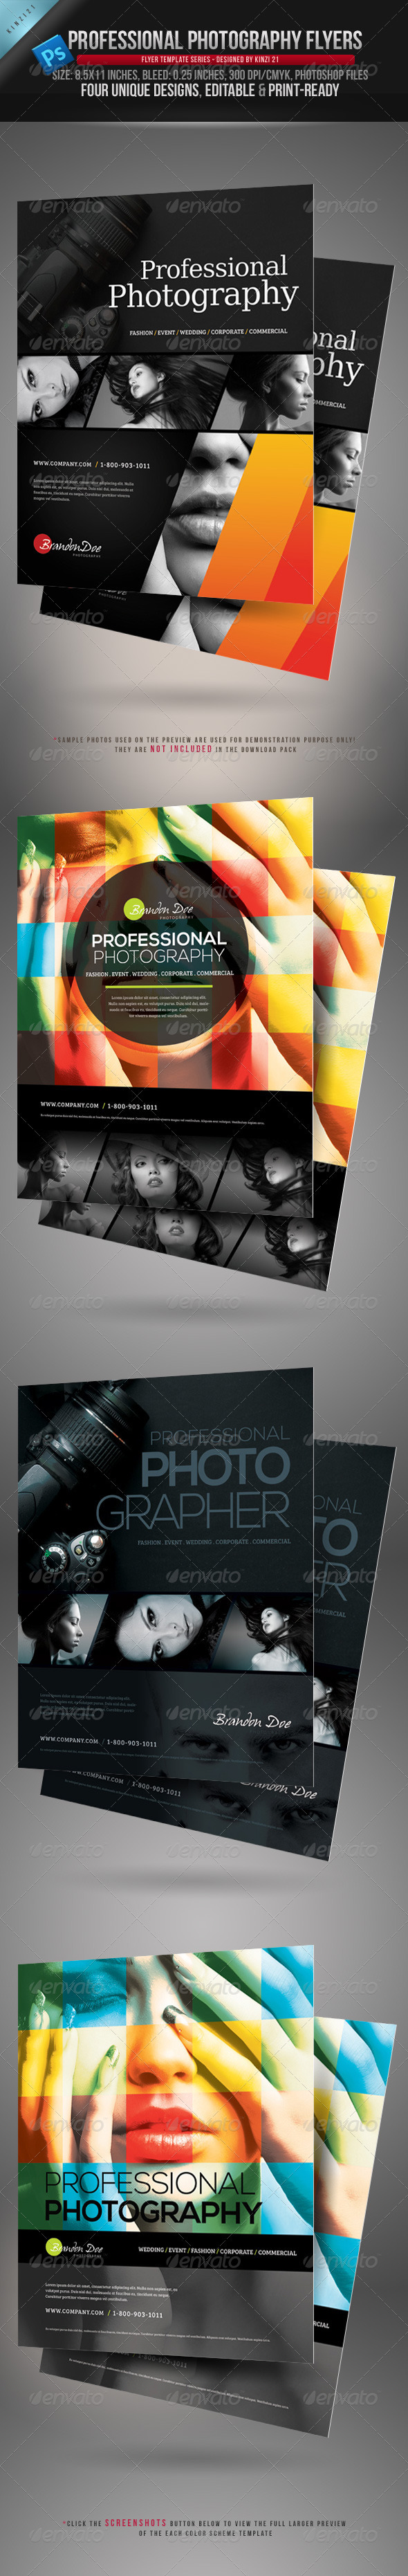 GraphicRiver Professional Photography Flyers 3664516